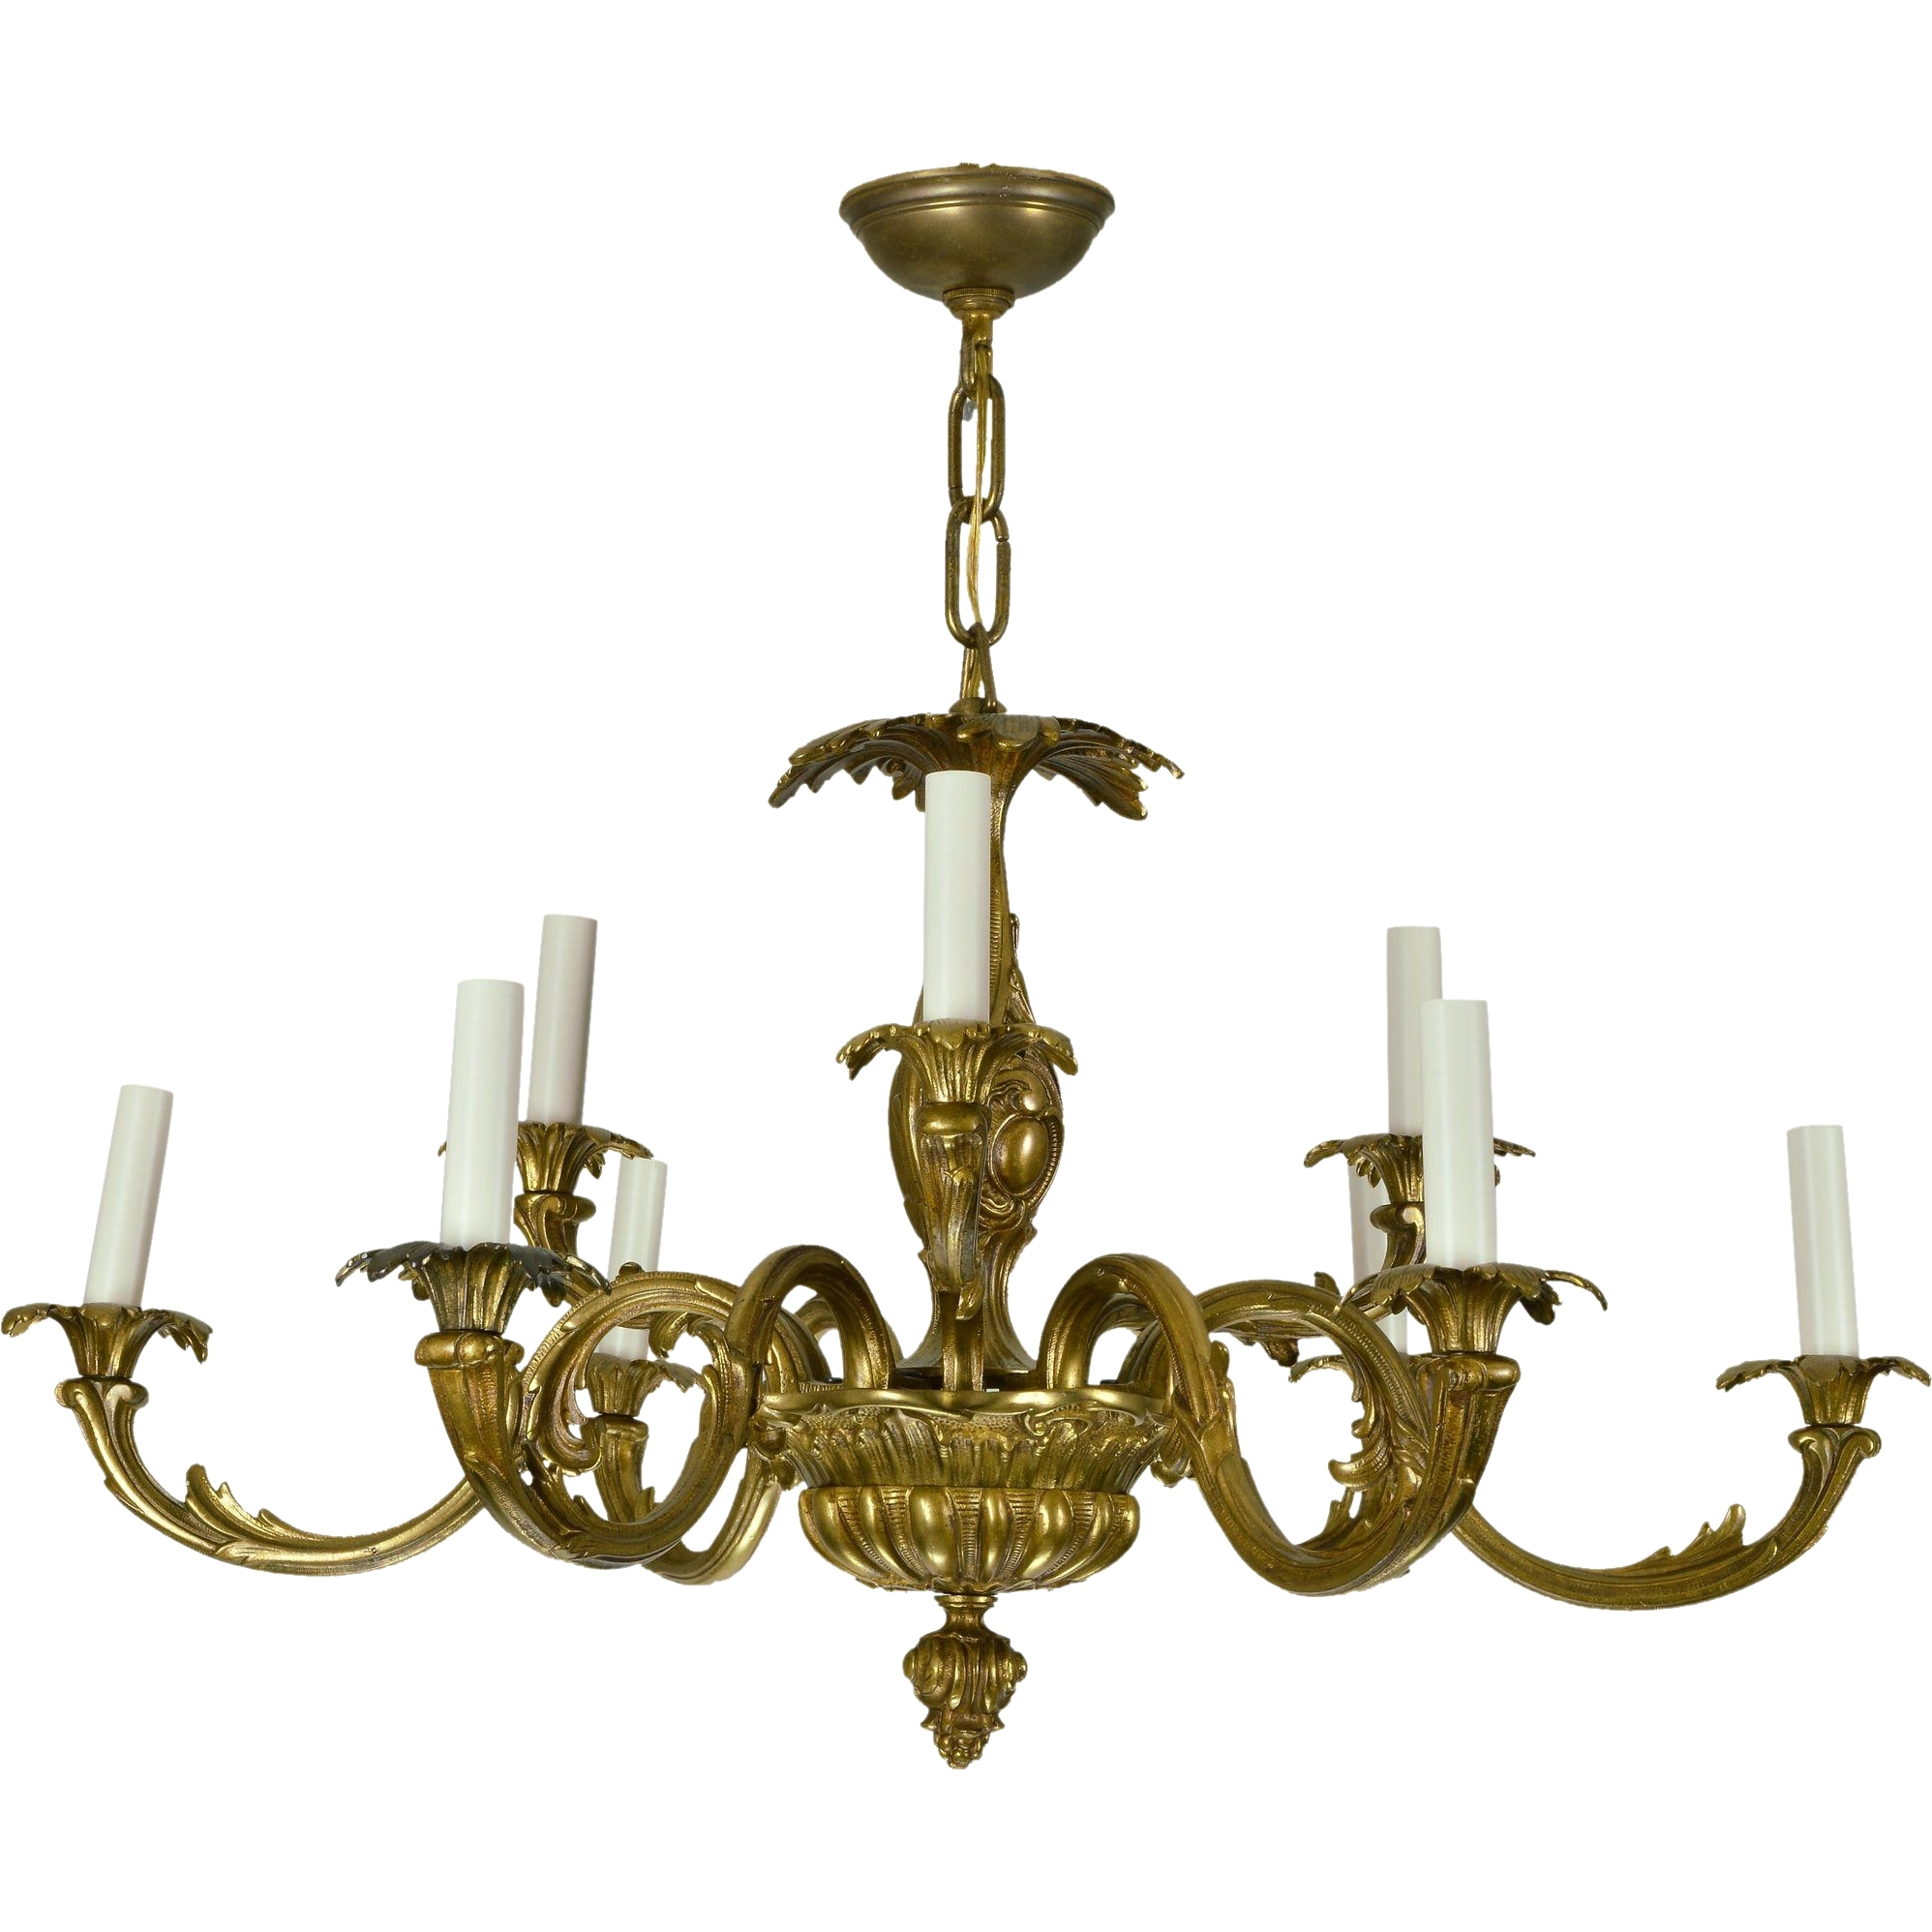 Home Design : Graceful Antique Brass Chandeliers Vintage Chandelier Intended For Most Recent Old Brass Chandeliers (View 5 of 15)